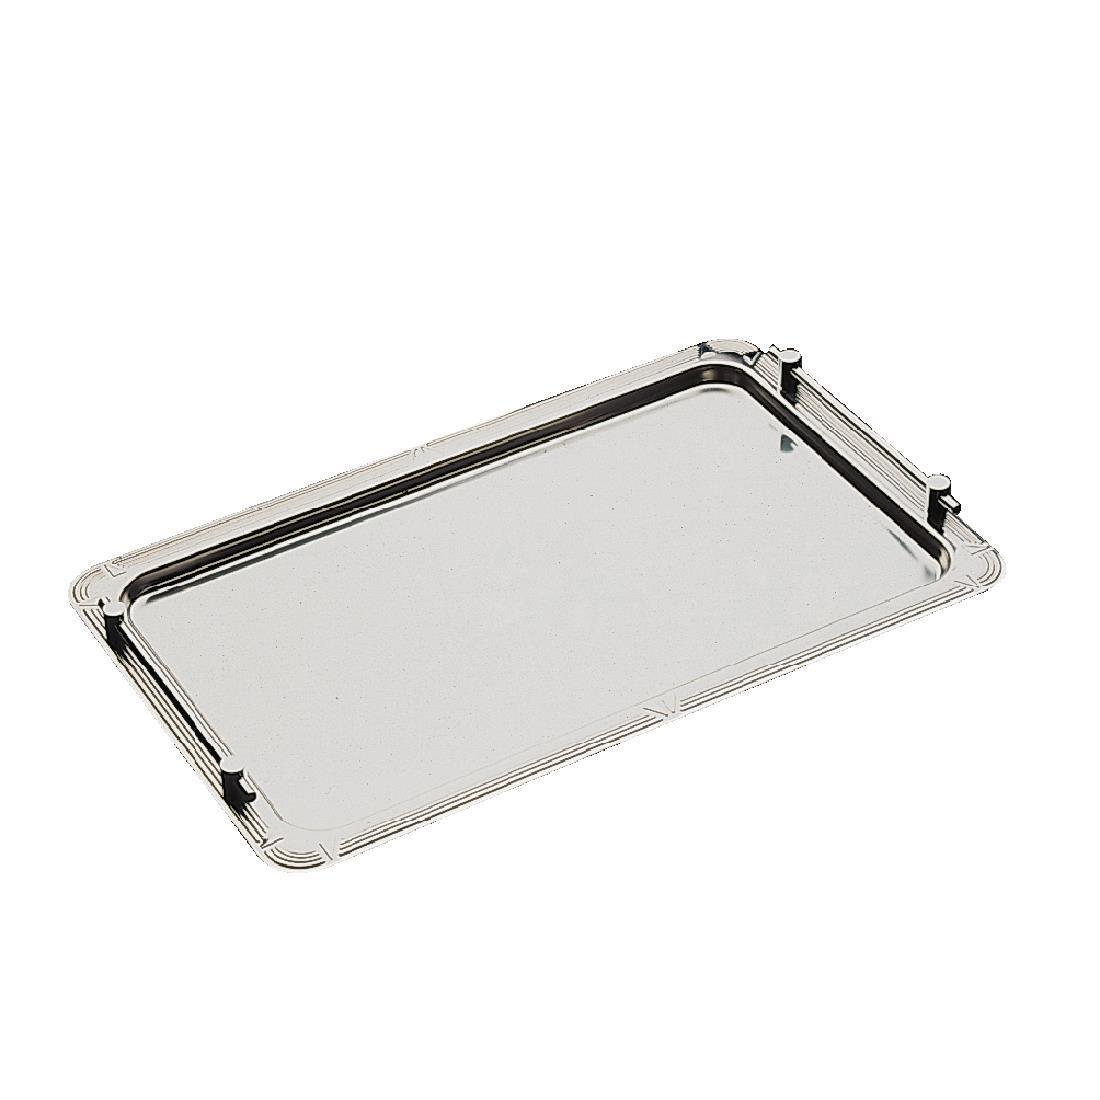 APS Stainless Steel Stacking Buffet Tray GN 1/1 - Each - P001